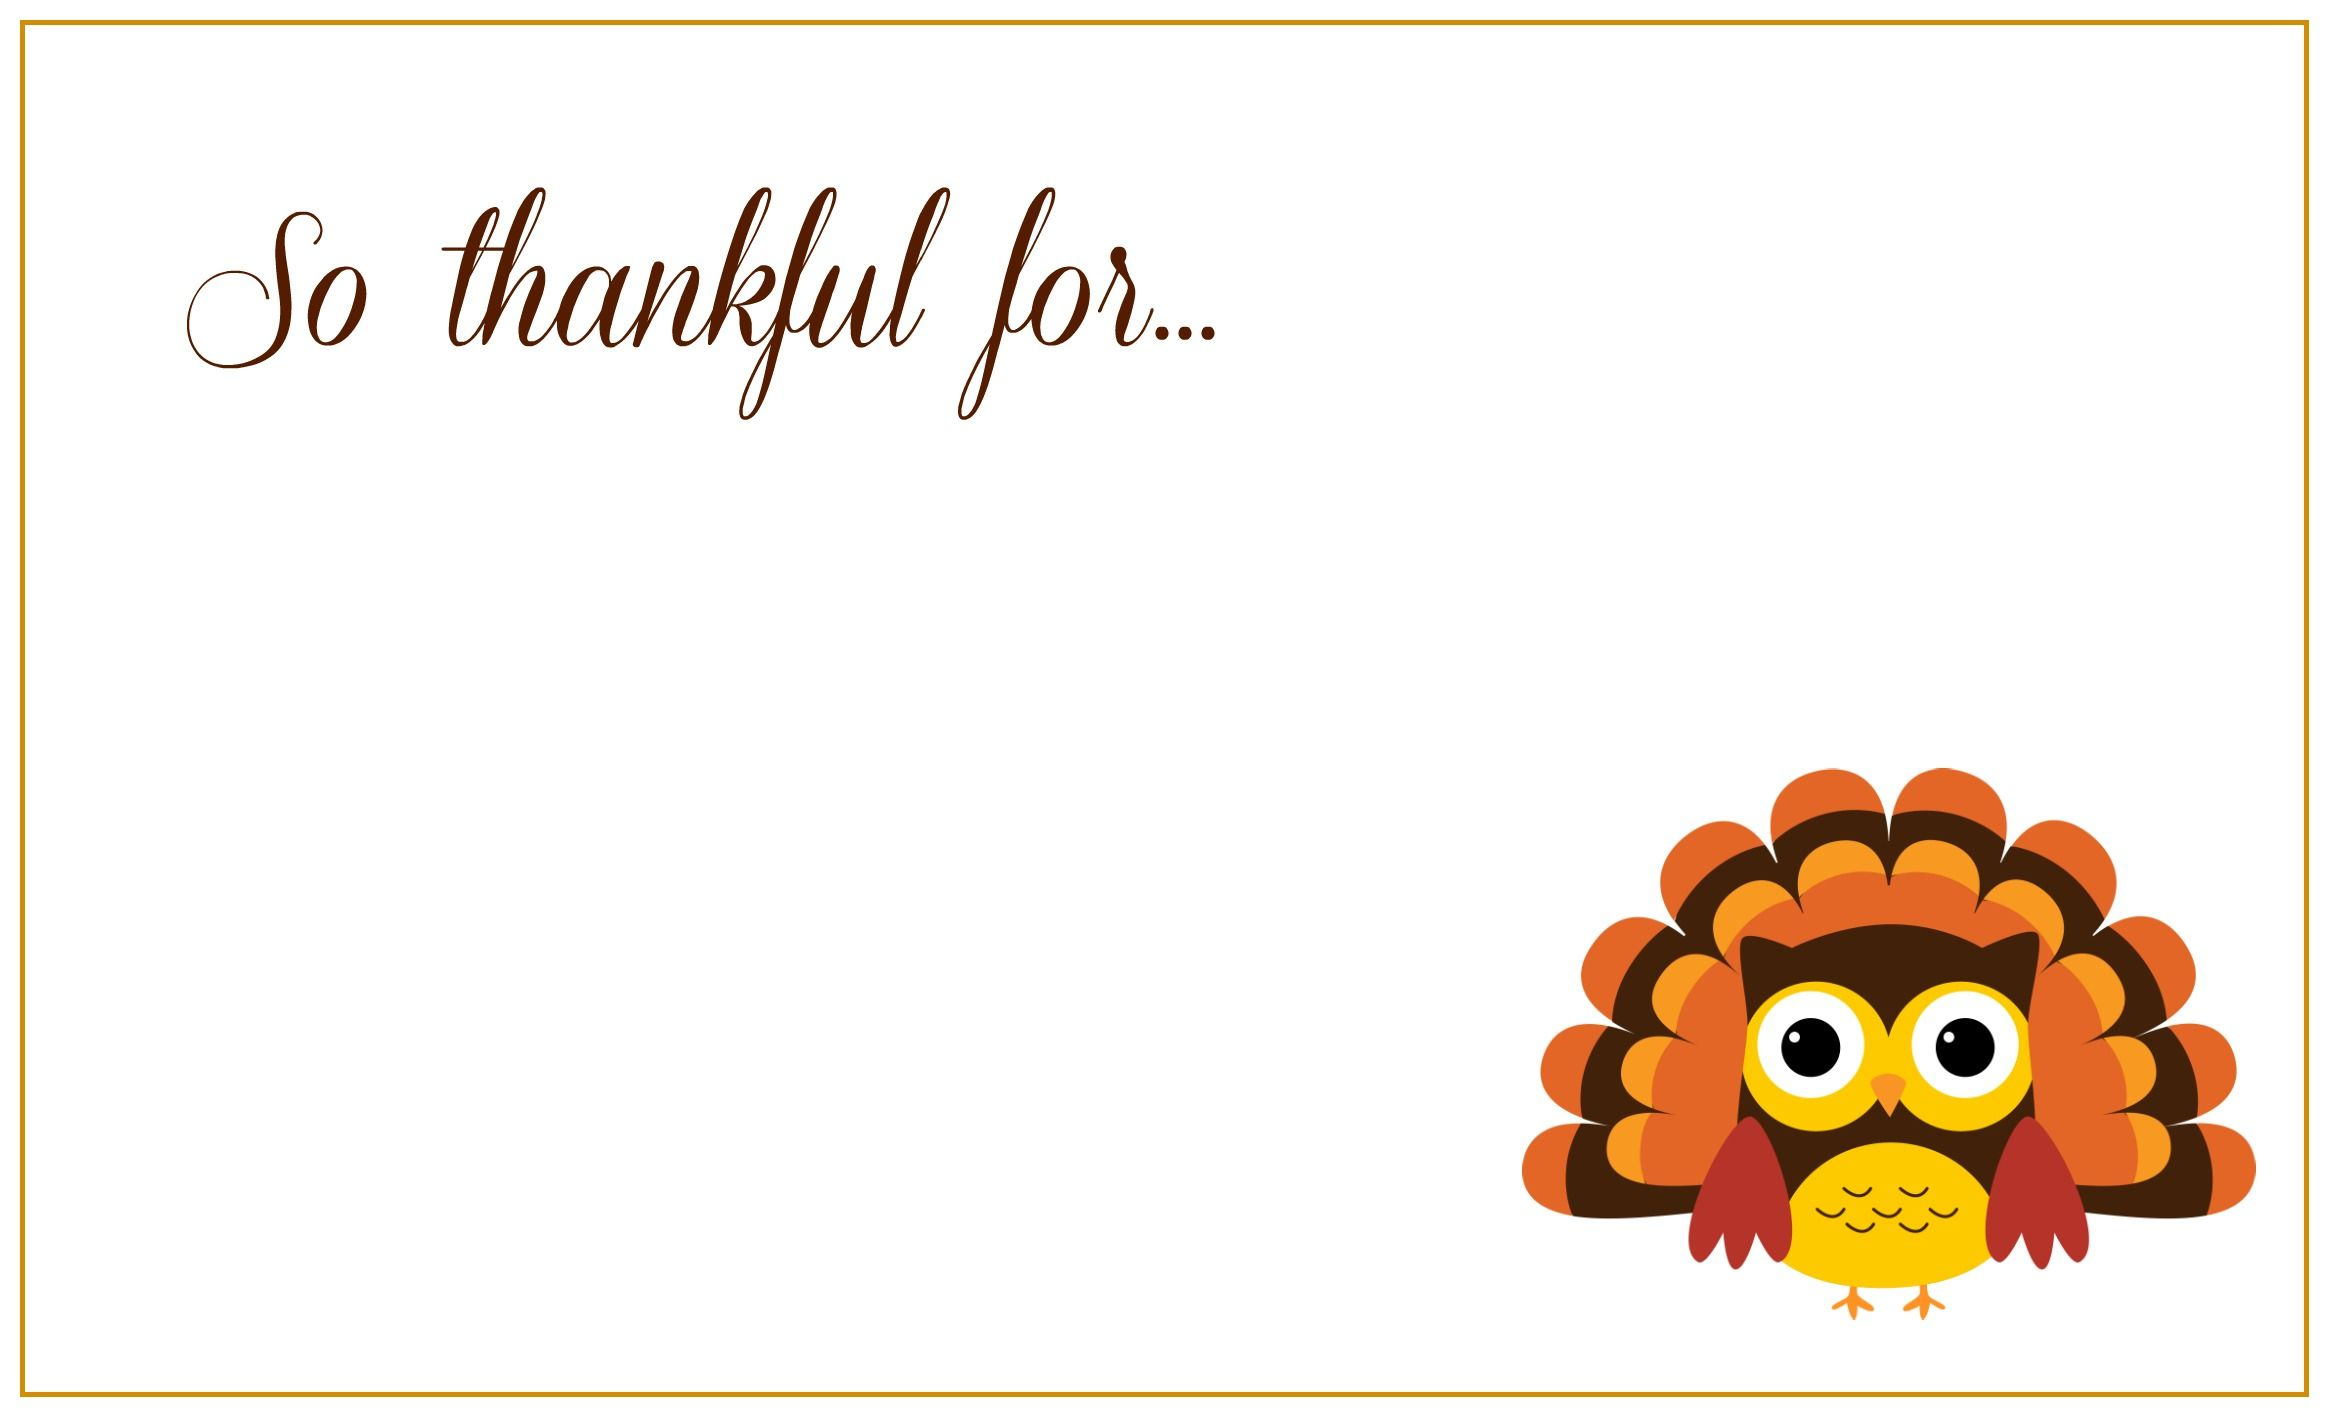 Free Printable Thanksgiving Greeting Cards | Thanksgiving Day - Free Printable Thanksgiving Cards